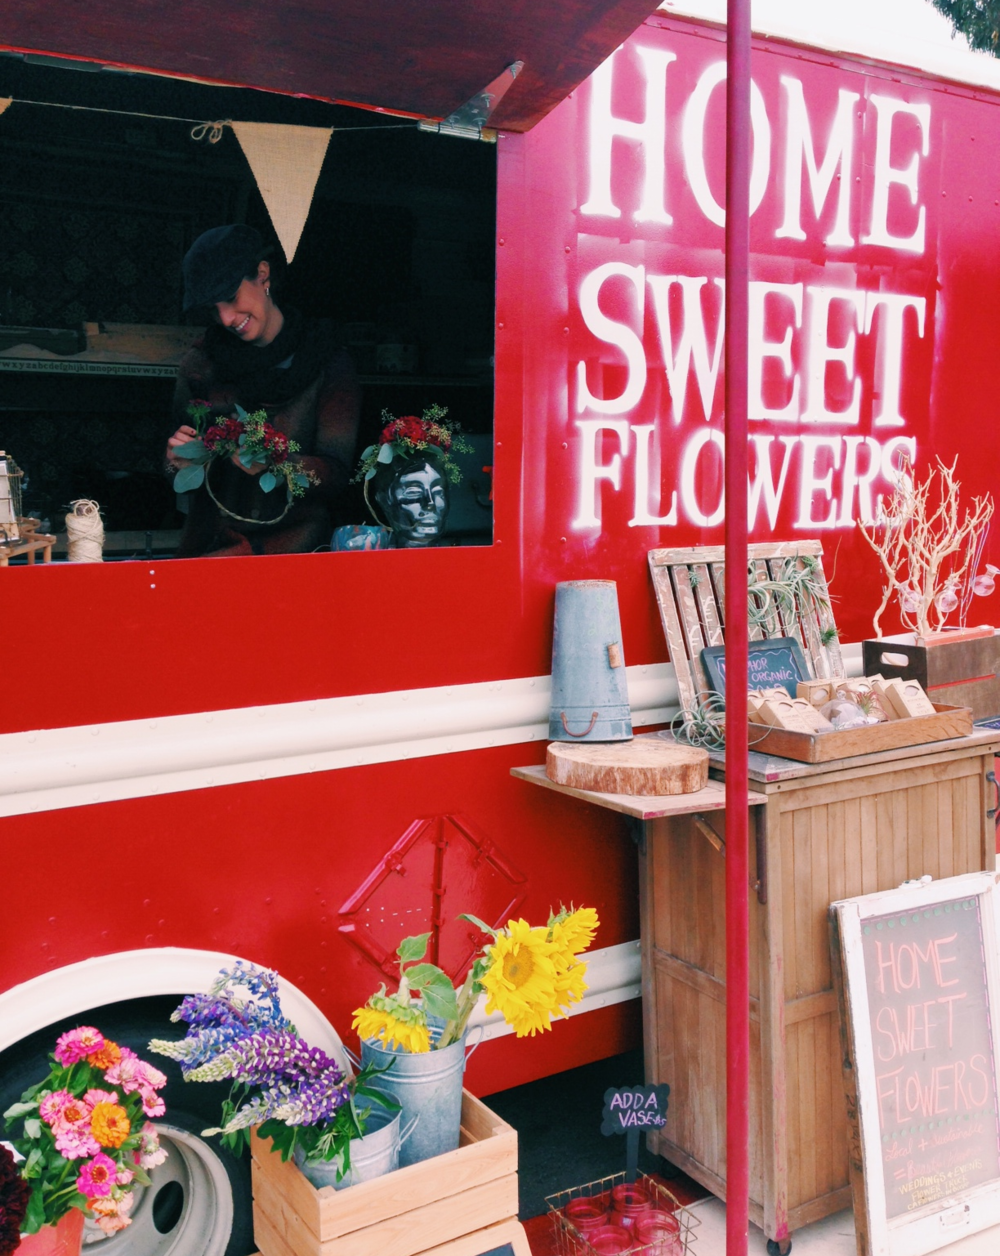 Check out Off the Grid Picnic at the Presido. There are great local food vendors with lush grassy hills. Be sure to stop by this adorable flower truck and get yourself a flower wreath!